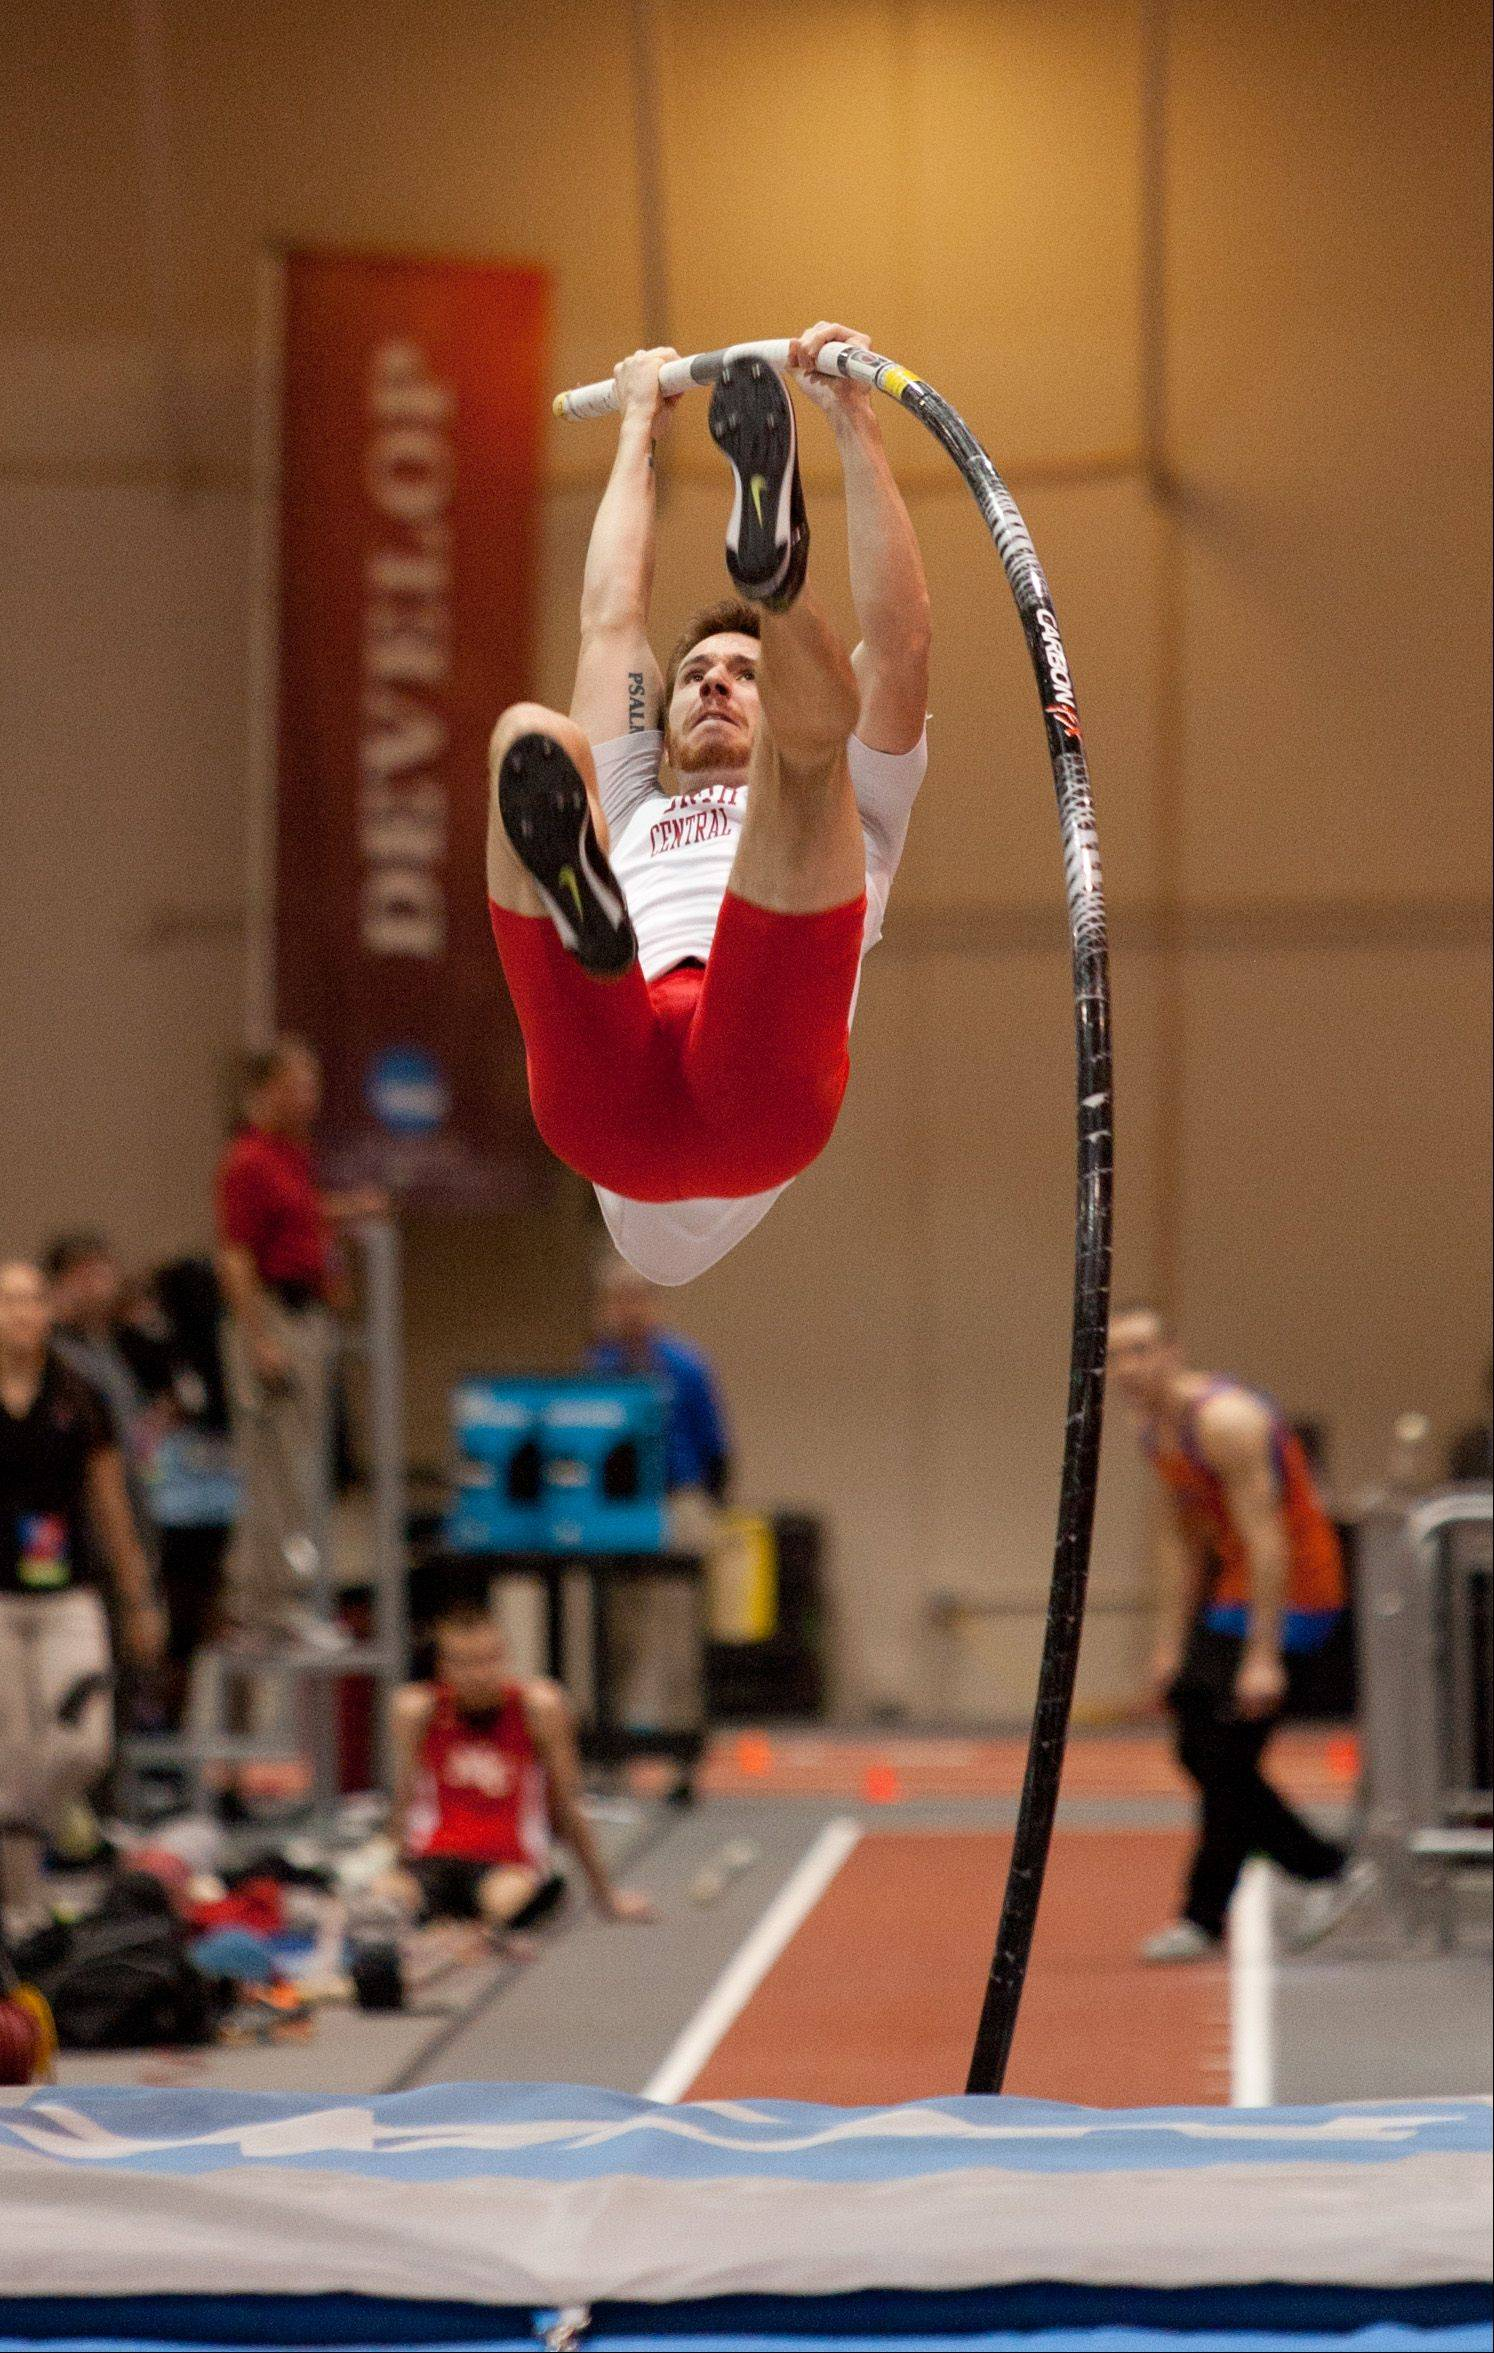 Daniel White/dwhite@dailyherald.com North Central College�s Josh Winder eyes the bar during the first day of NCAA Division III National Indoor Track and Field Championships at North Central College in Naperville. Winder, a former national champion pole vaulter, finished third.